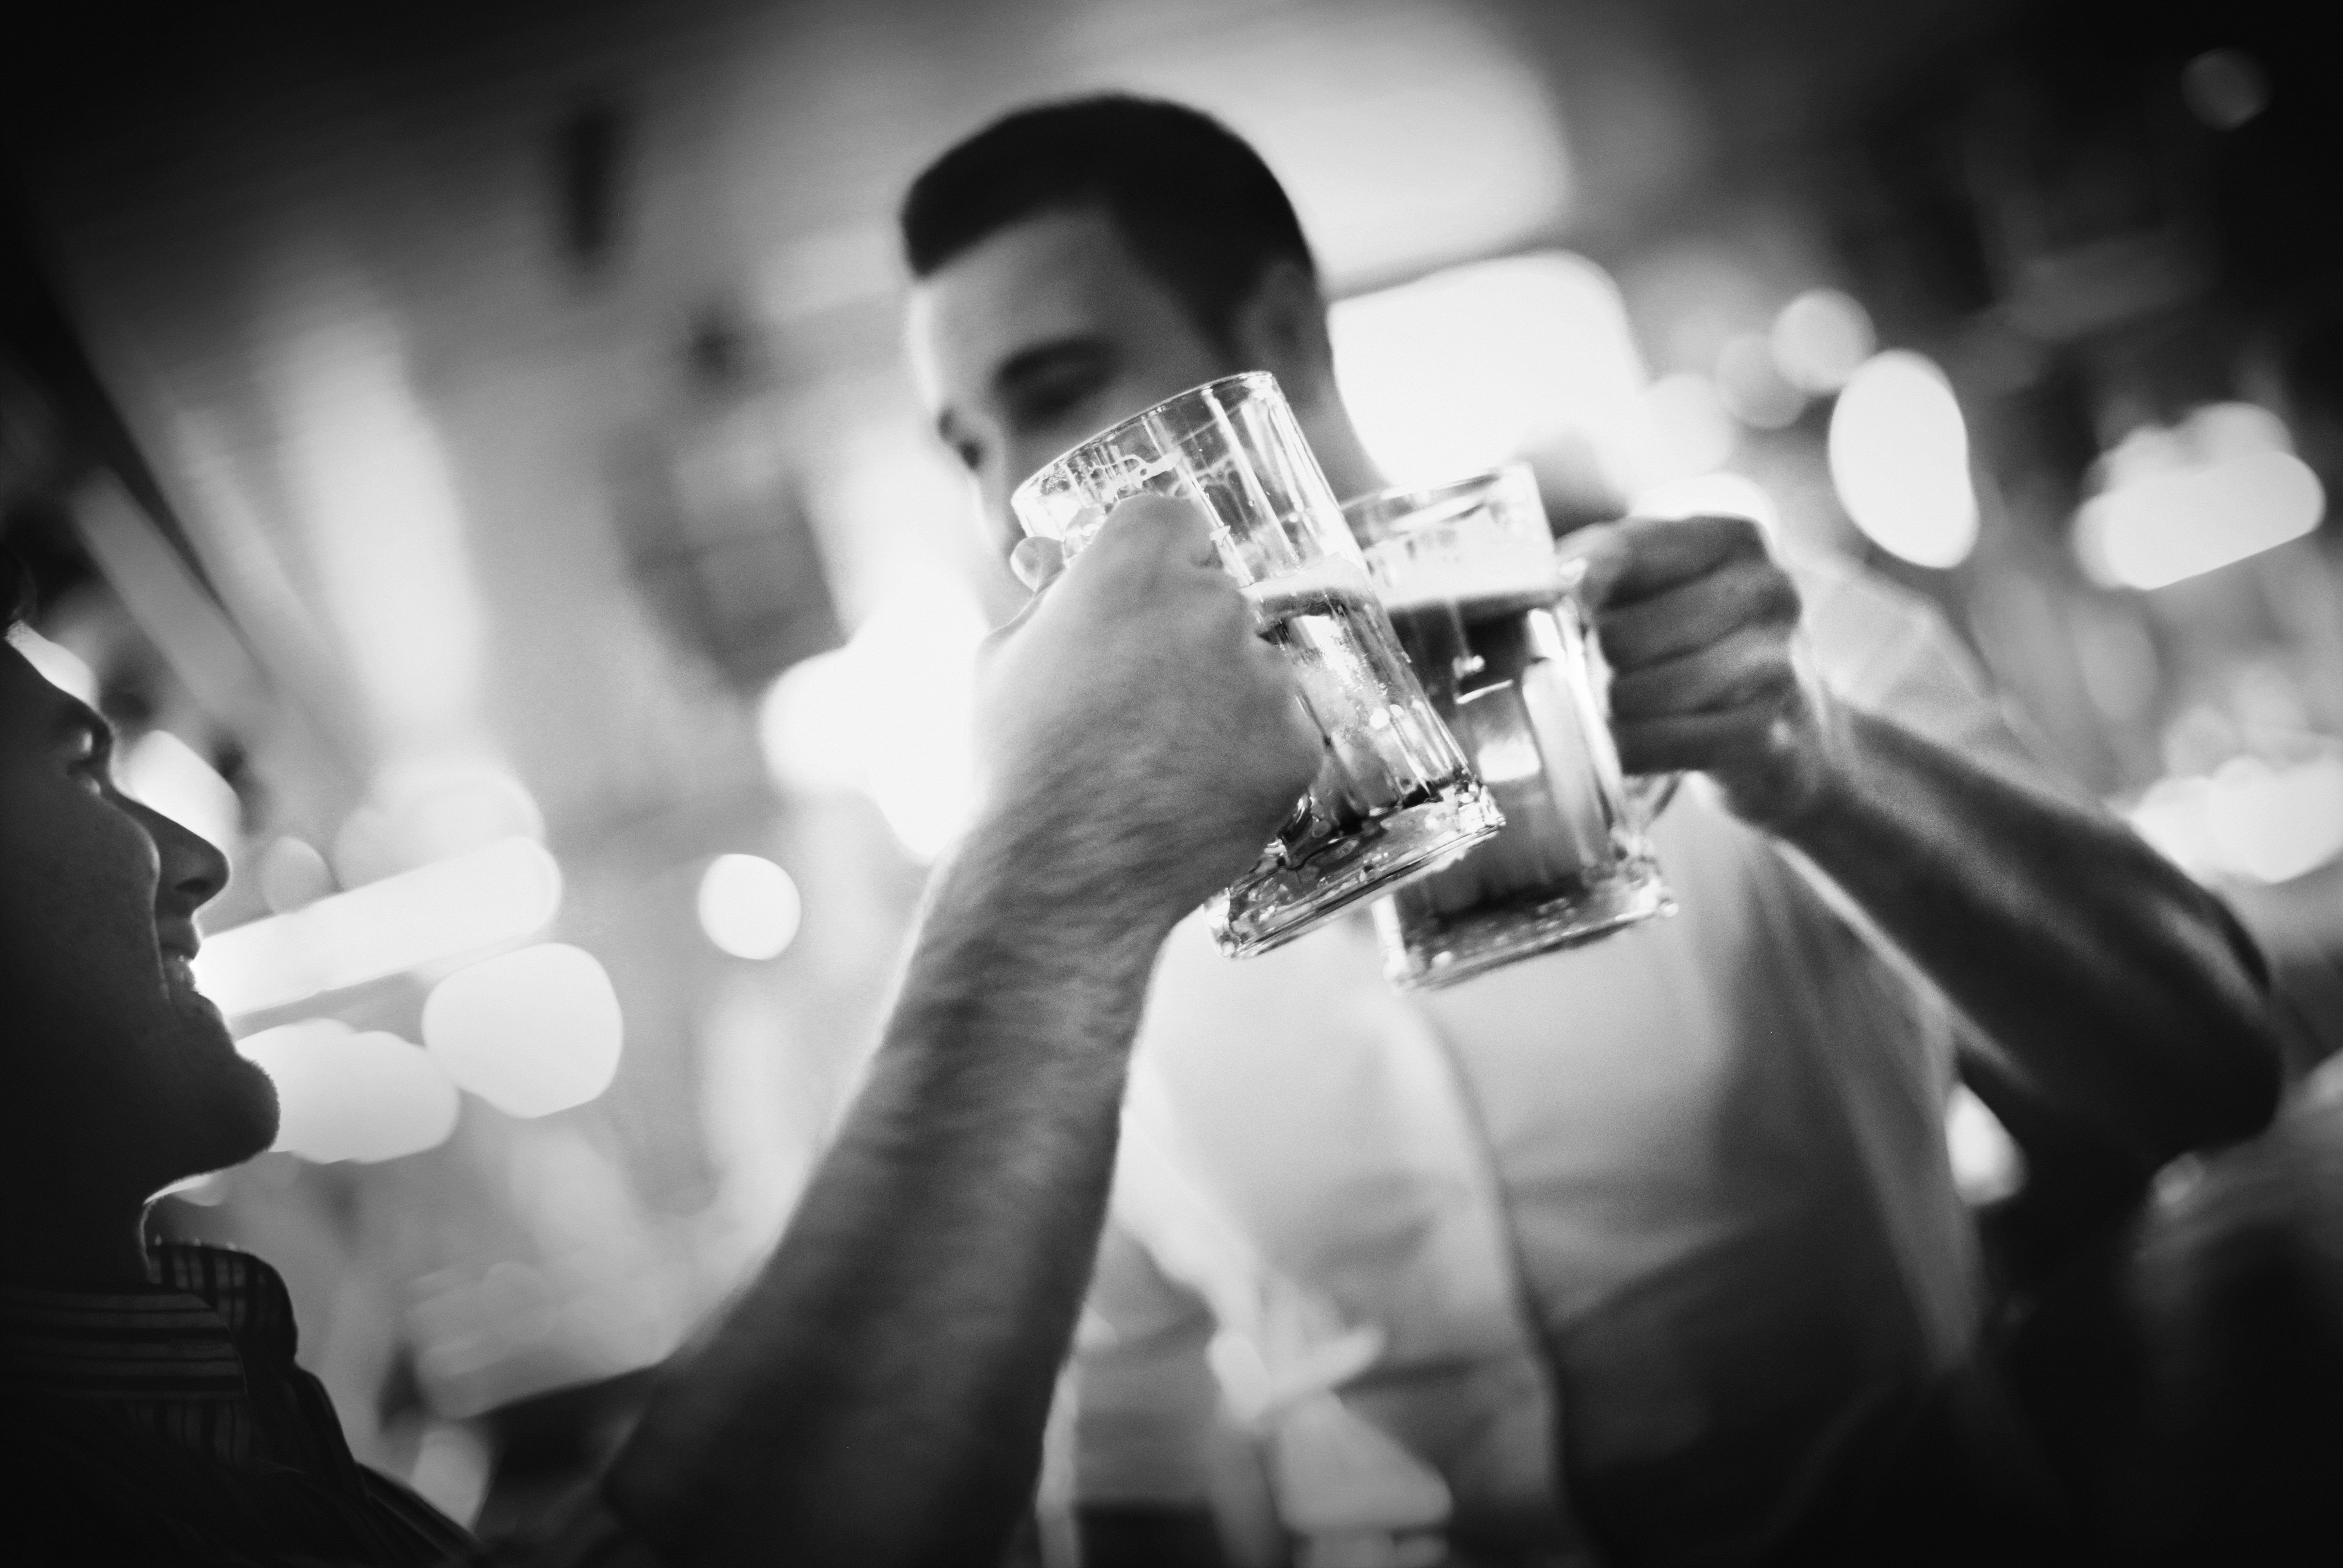 Two middle aged men having beer in a bar.They are toasting with beer mugs.Relaxed weekend night out.Black and white.